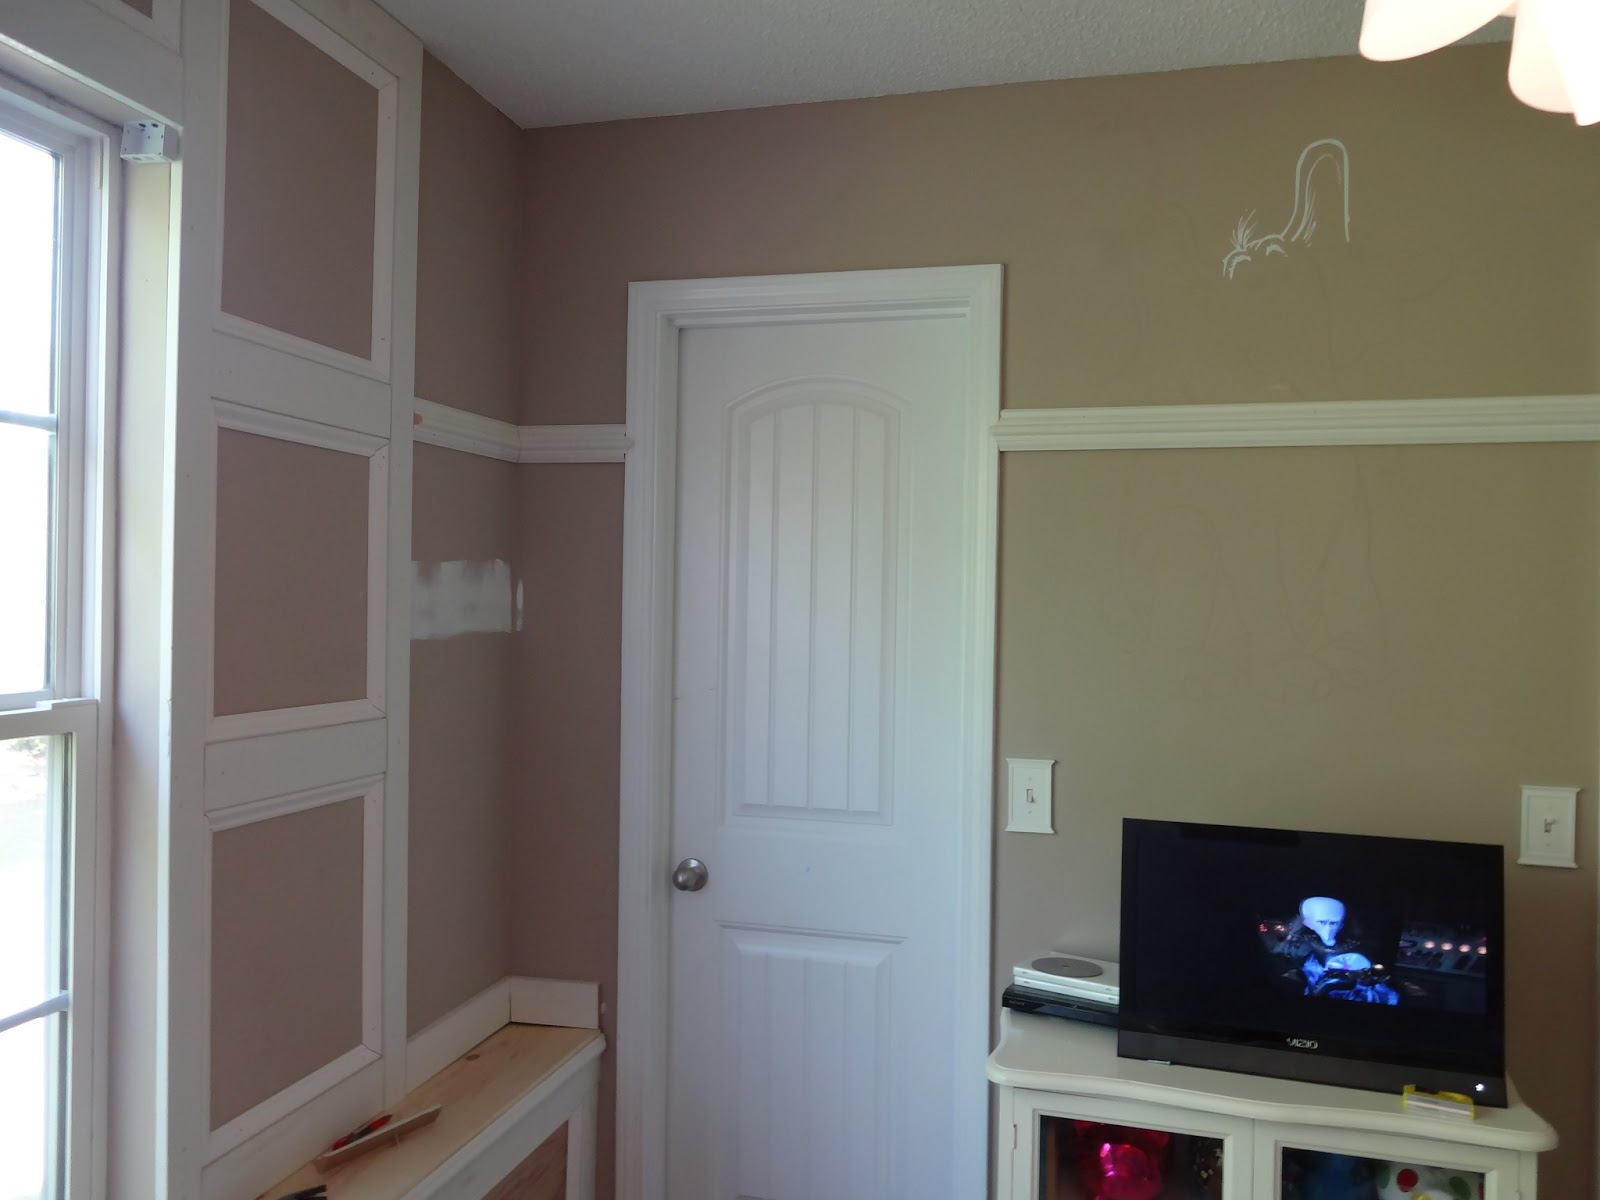 Bedroom Makeover with Window Molding